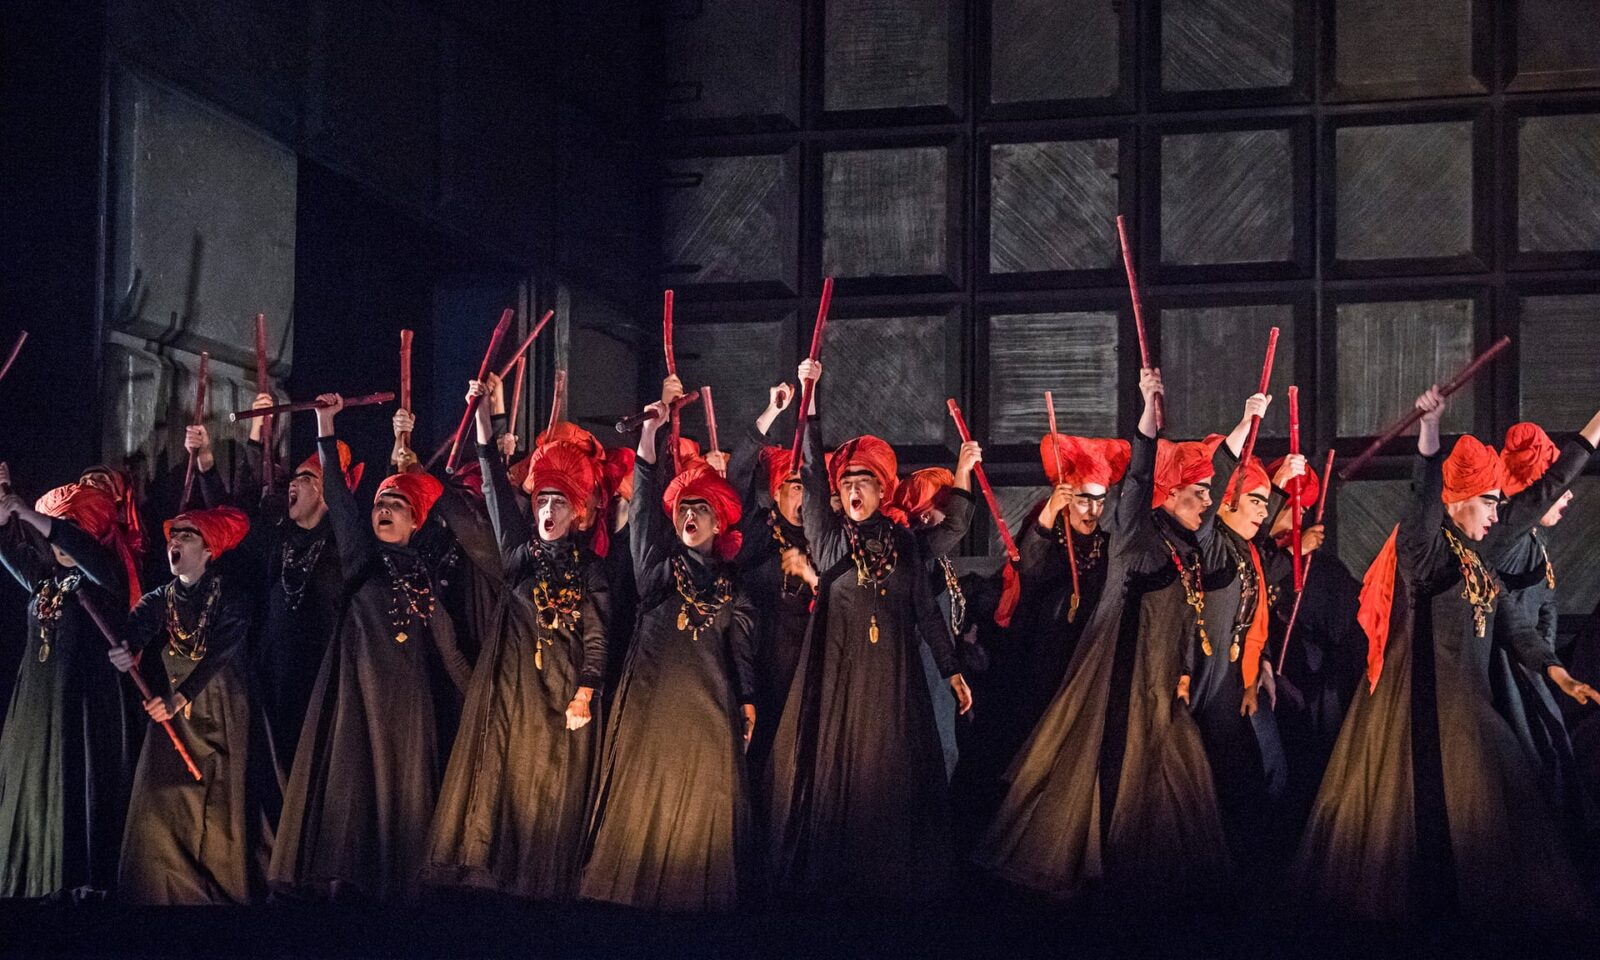 Macbeth Review – Musically Formidable Revival of Verdi's Opera